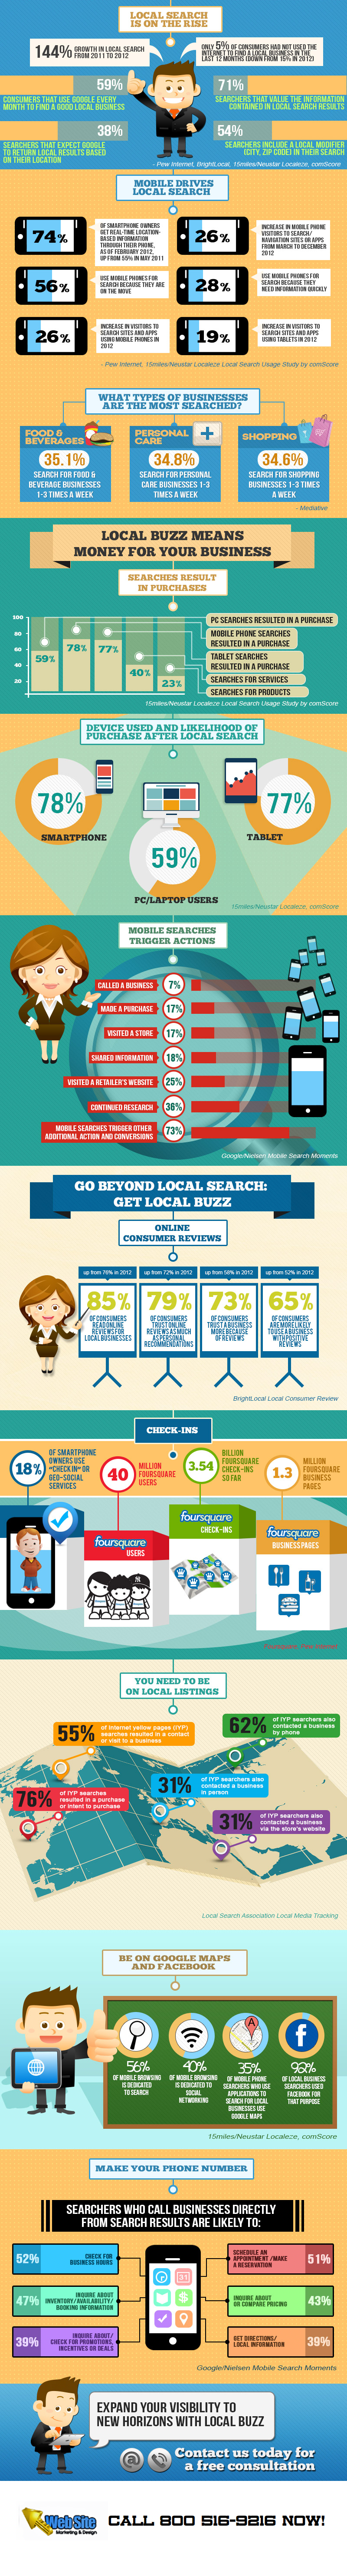 Local-Buzz-Infographic